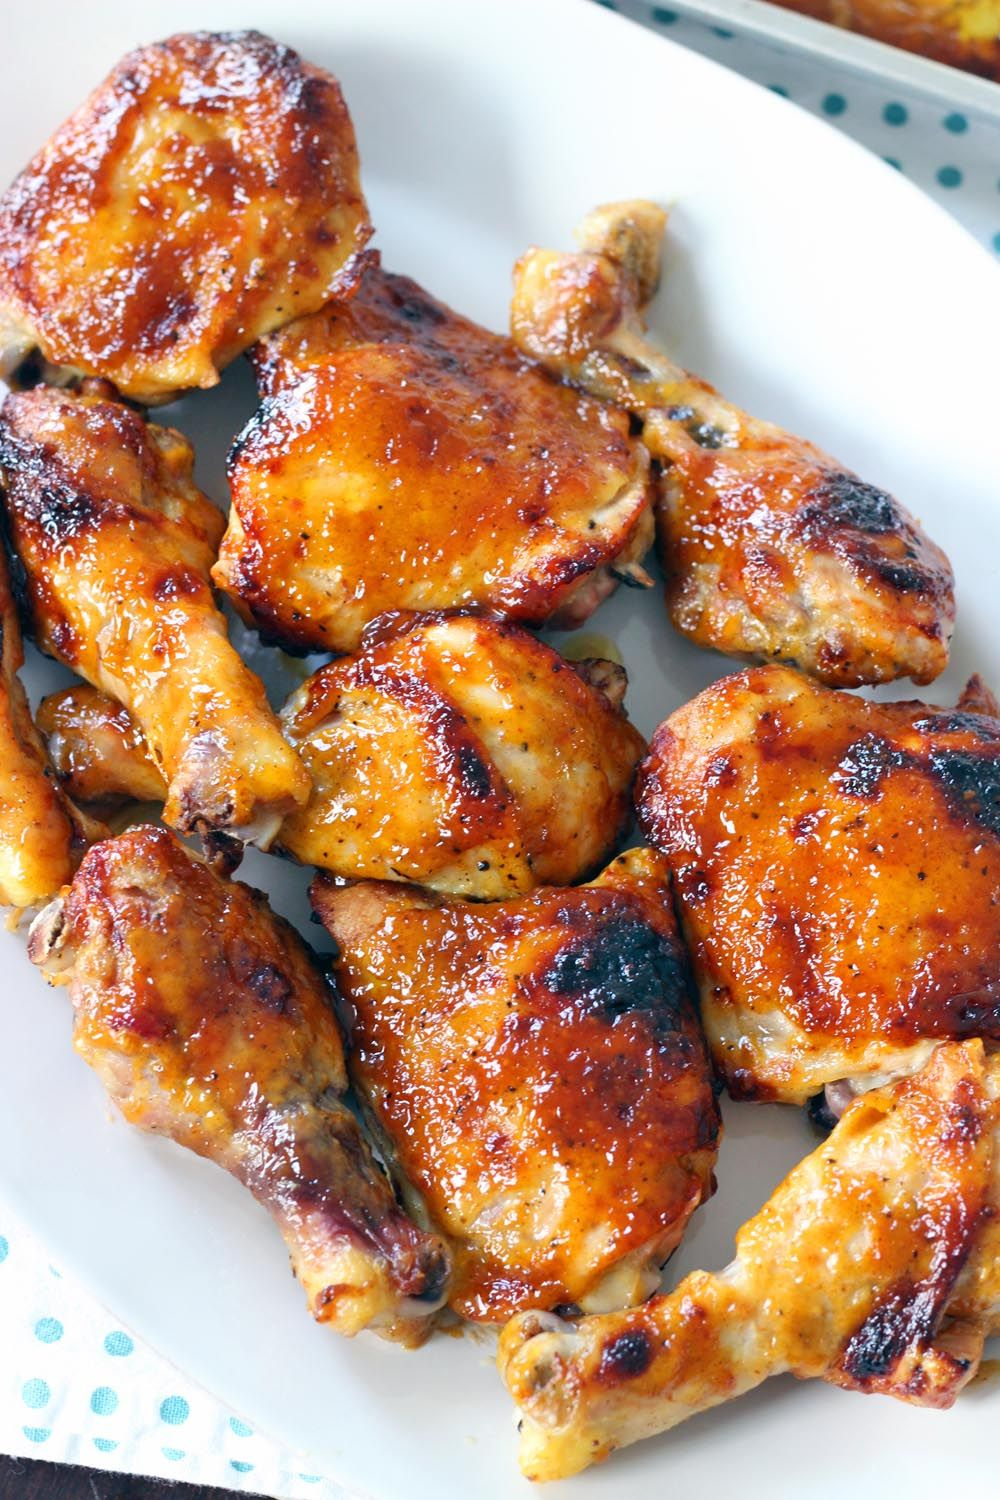 Jamaican baked barbecue chicken recipe